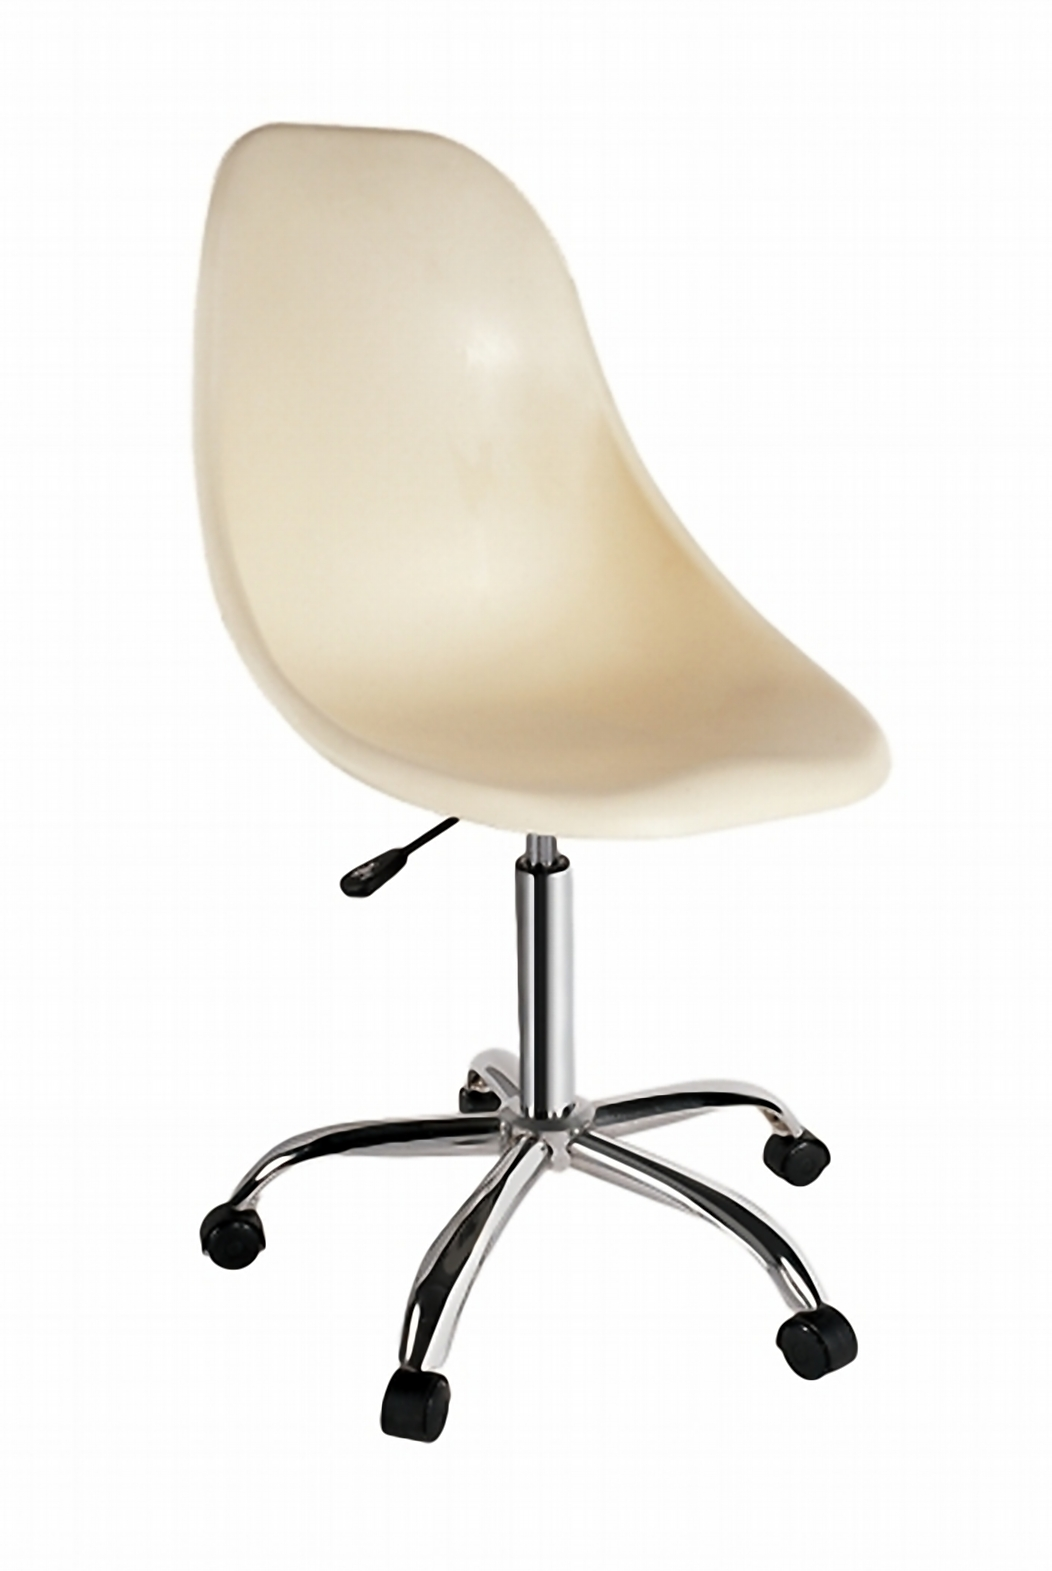 imported chairs td designs